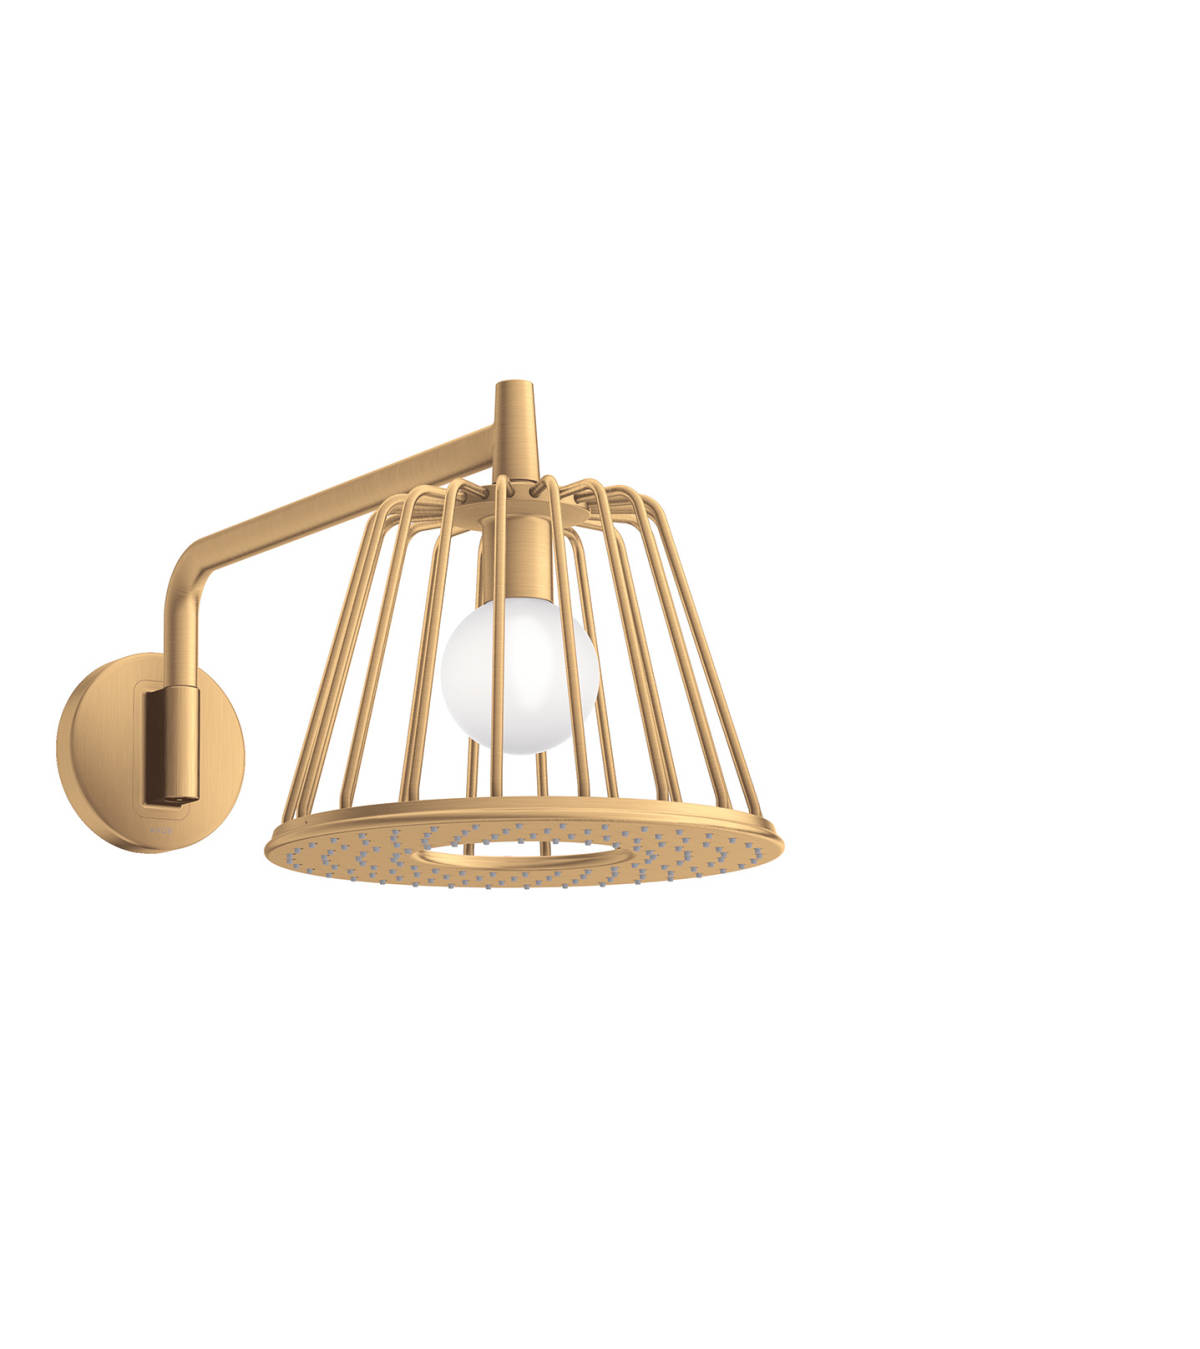 LampShower 275 1jet with shower arm, Brushed Brass, 26031950